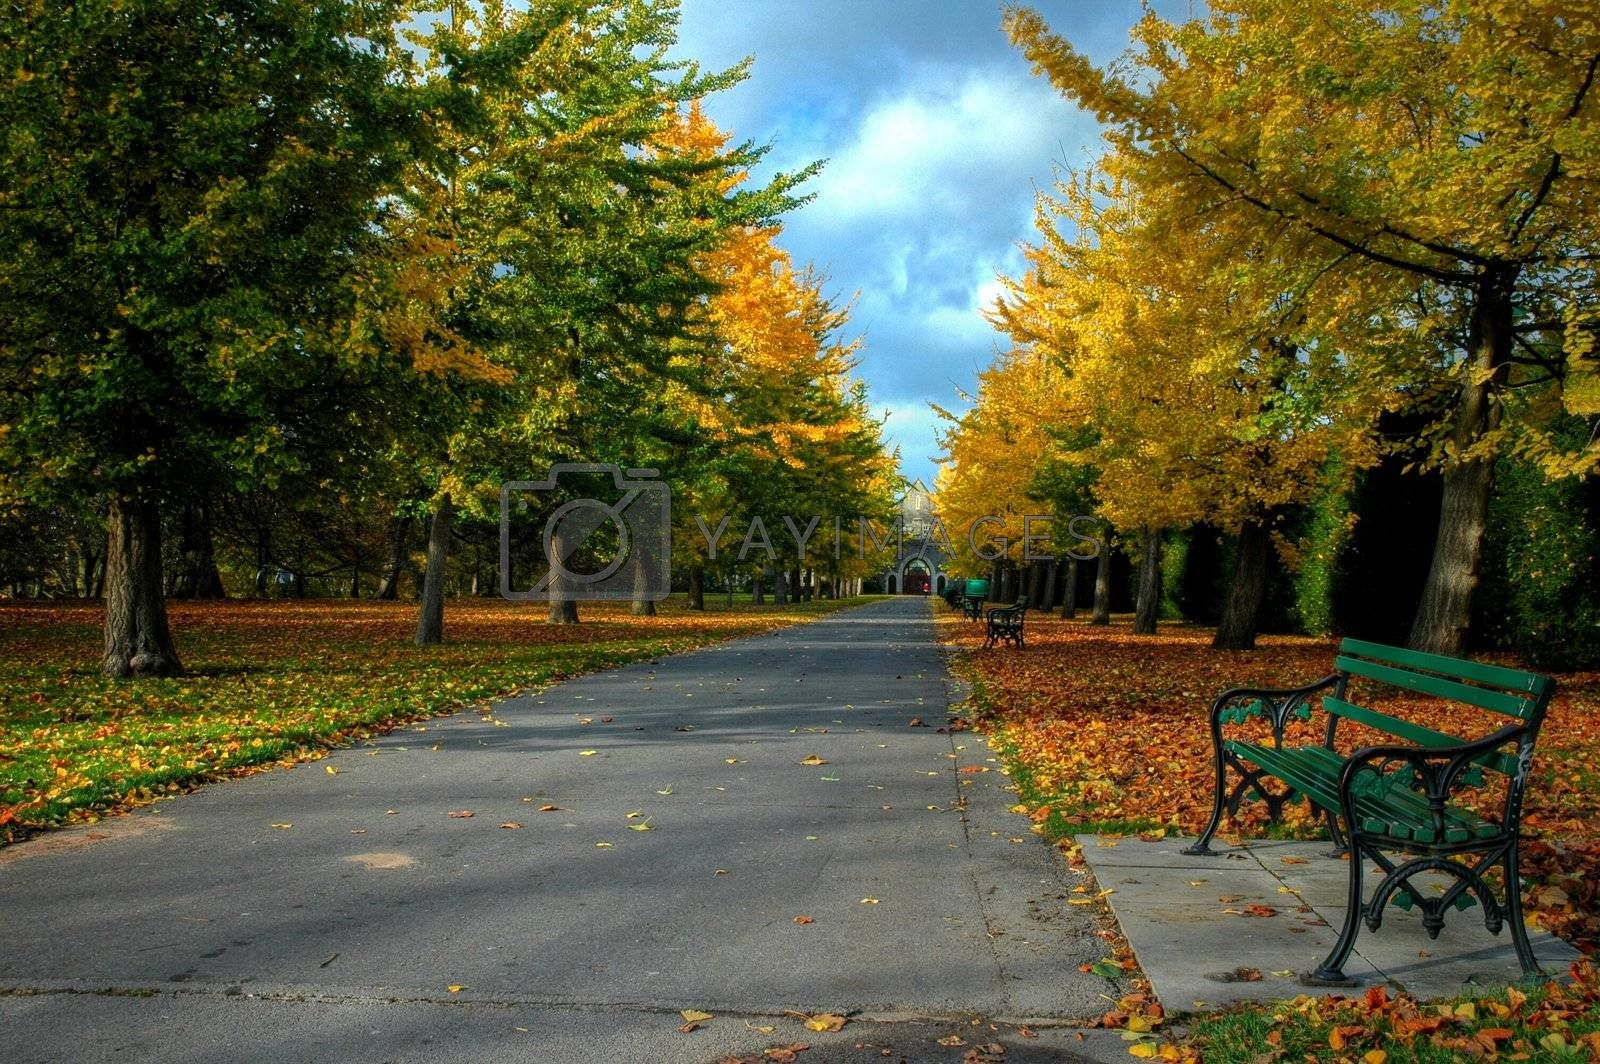 bute park in cardiff with beautiful autumn colours of trees and bench